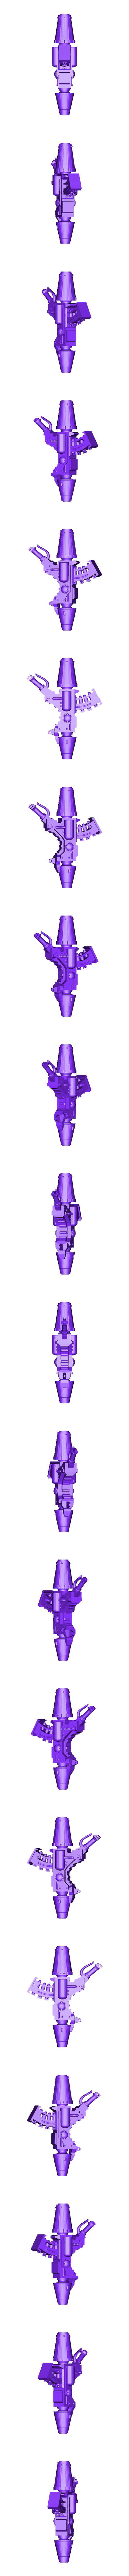 RT_Missile_Launcher_02.stl Download STL file Rogue Trader Era Missile Launcher • 3D printer object, MKojiro